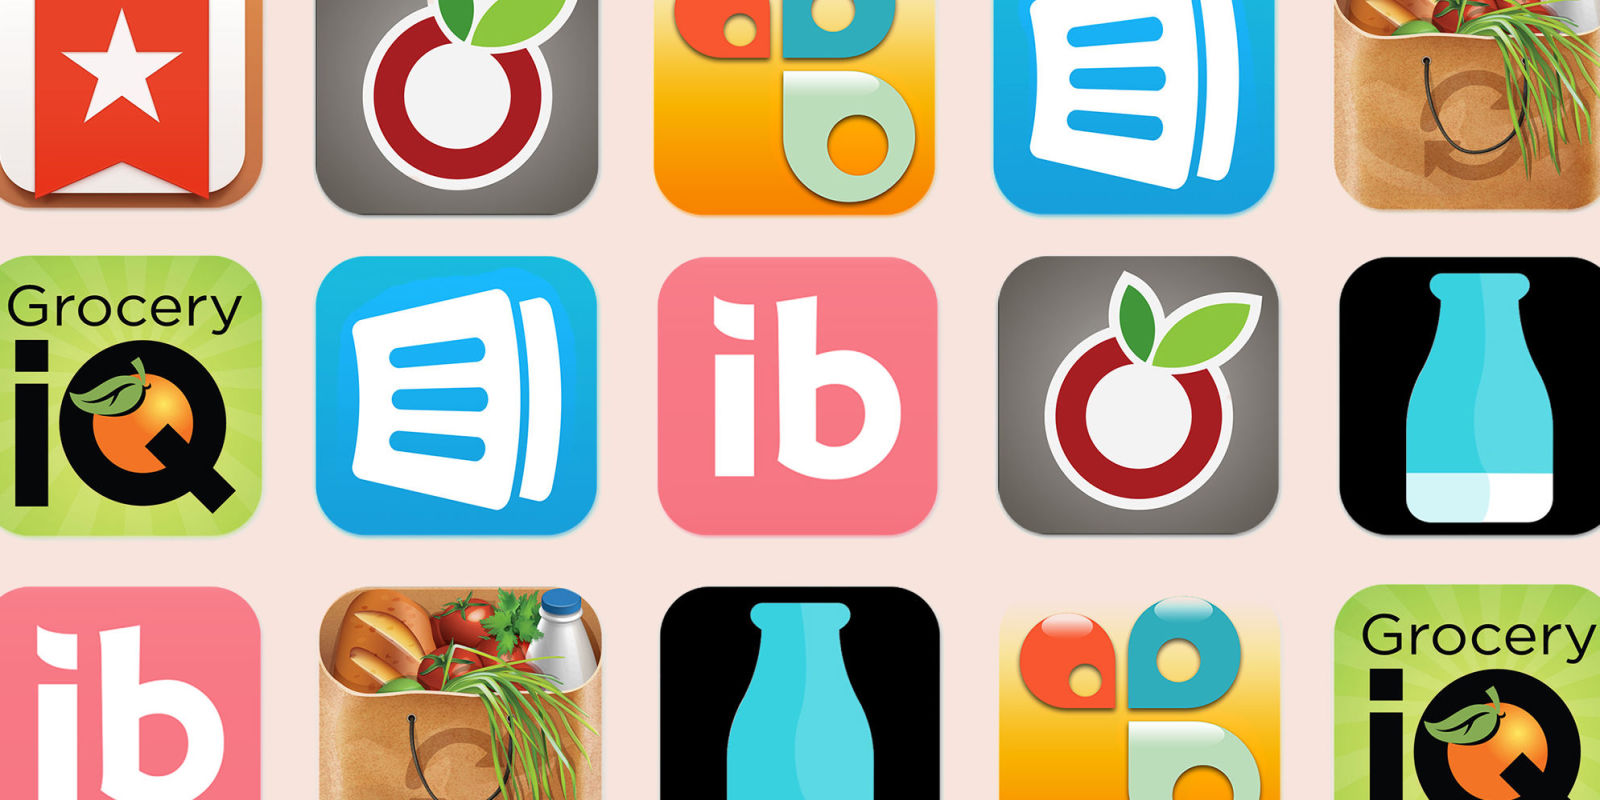 13 best grocery list apps of 2017 helpful shopping list apps for groceries. Black Bedroom Furniture Sets. Home Design Ideas